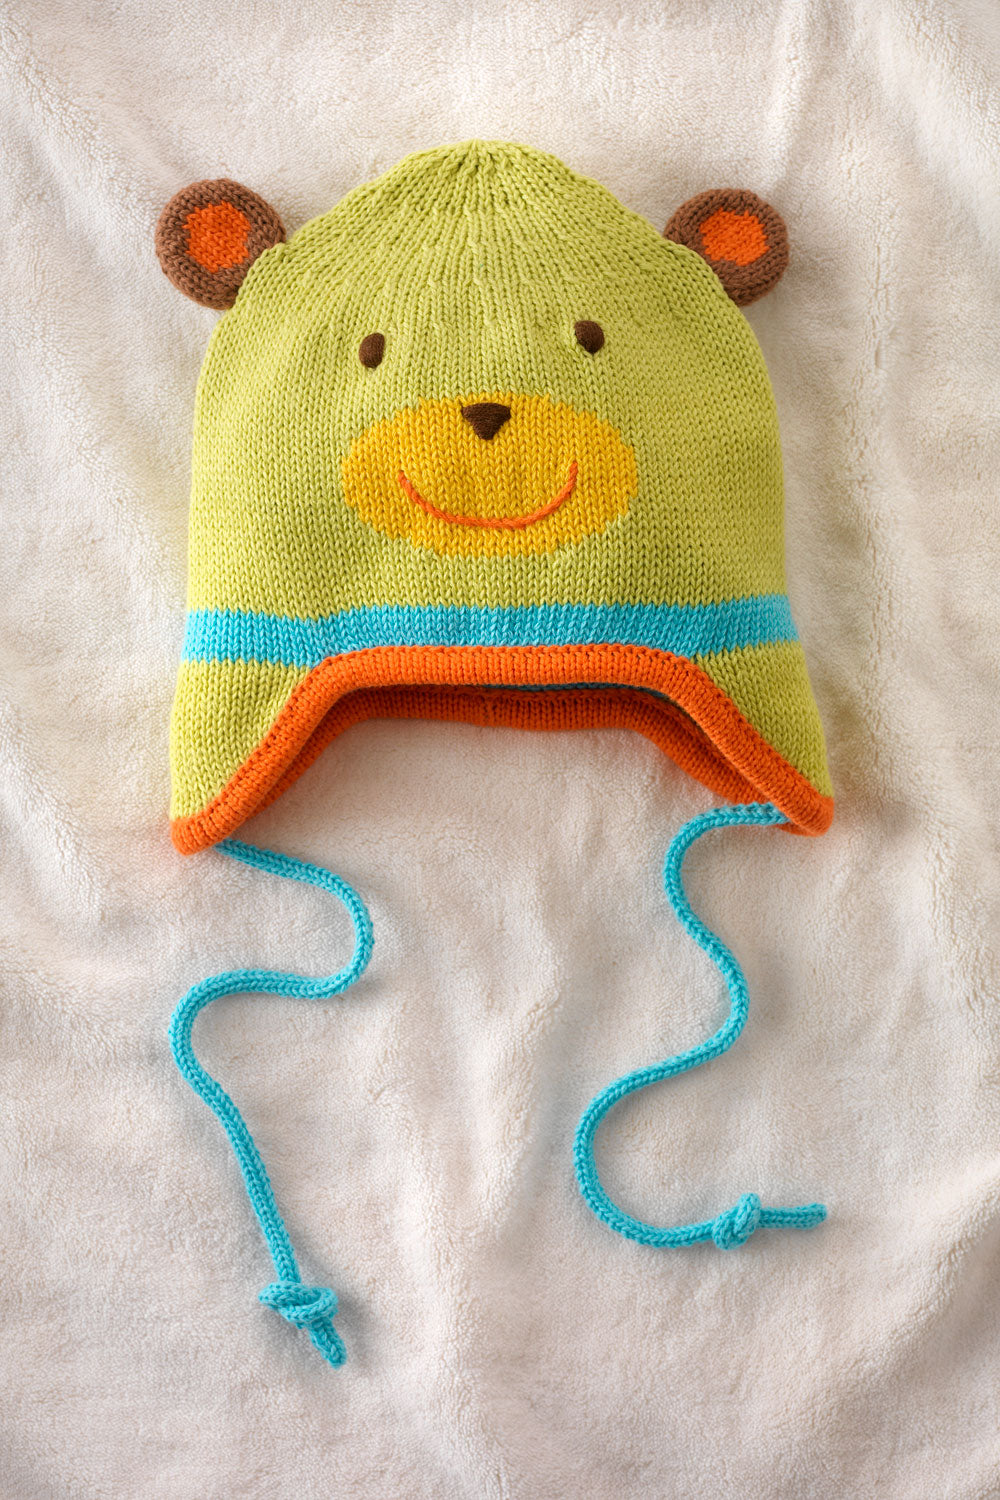 joobles-fair-trade-organic-baby-earflap-cap-huggy-the-bear